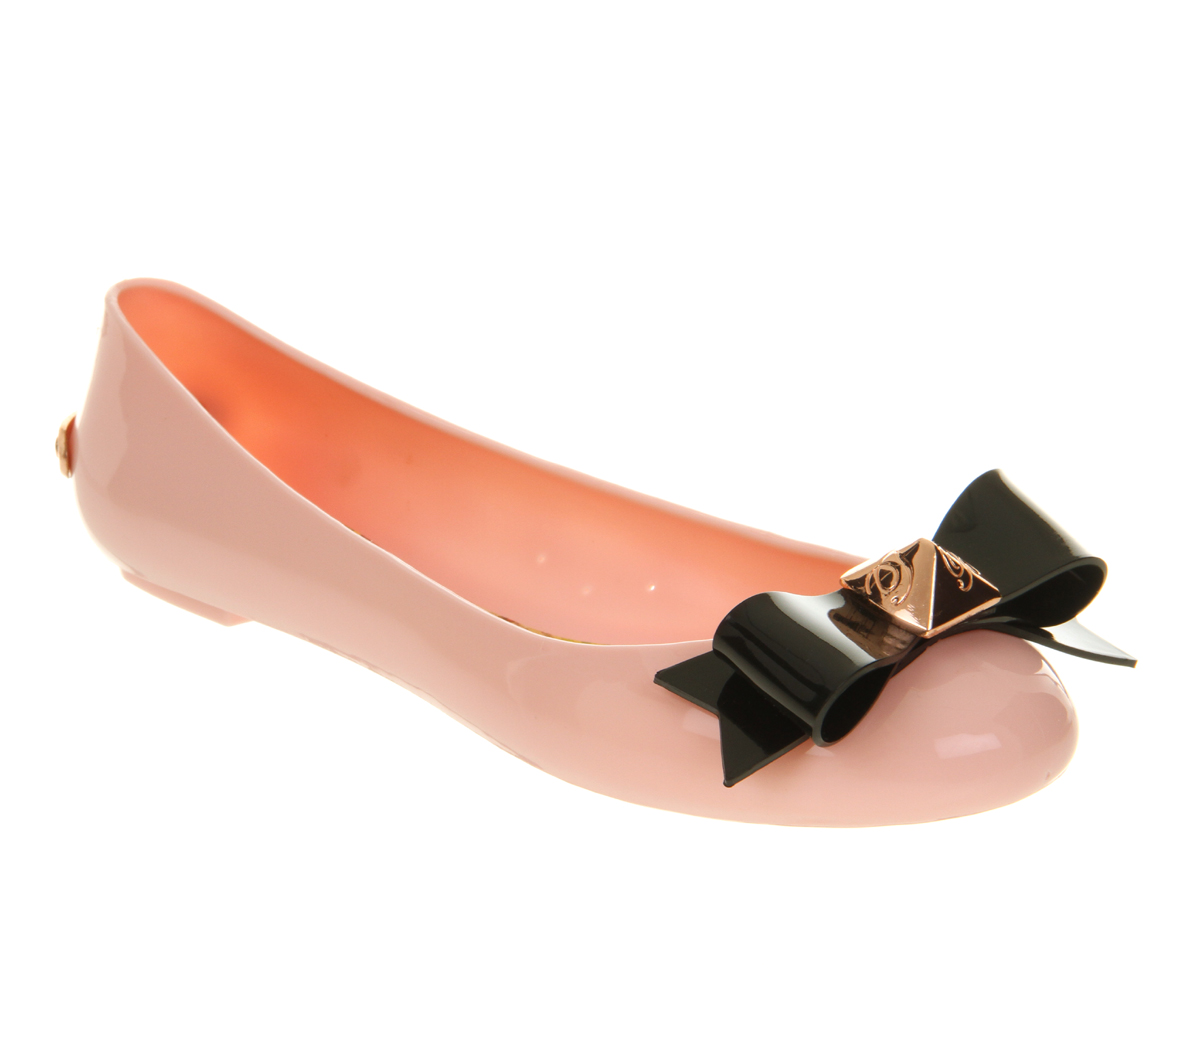 Ted Baker Jemmee Shoes - Black | Free UK Delivery on All Orders